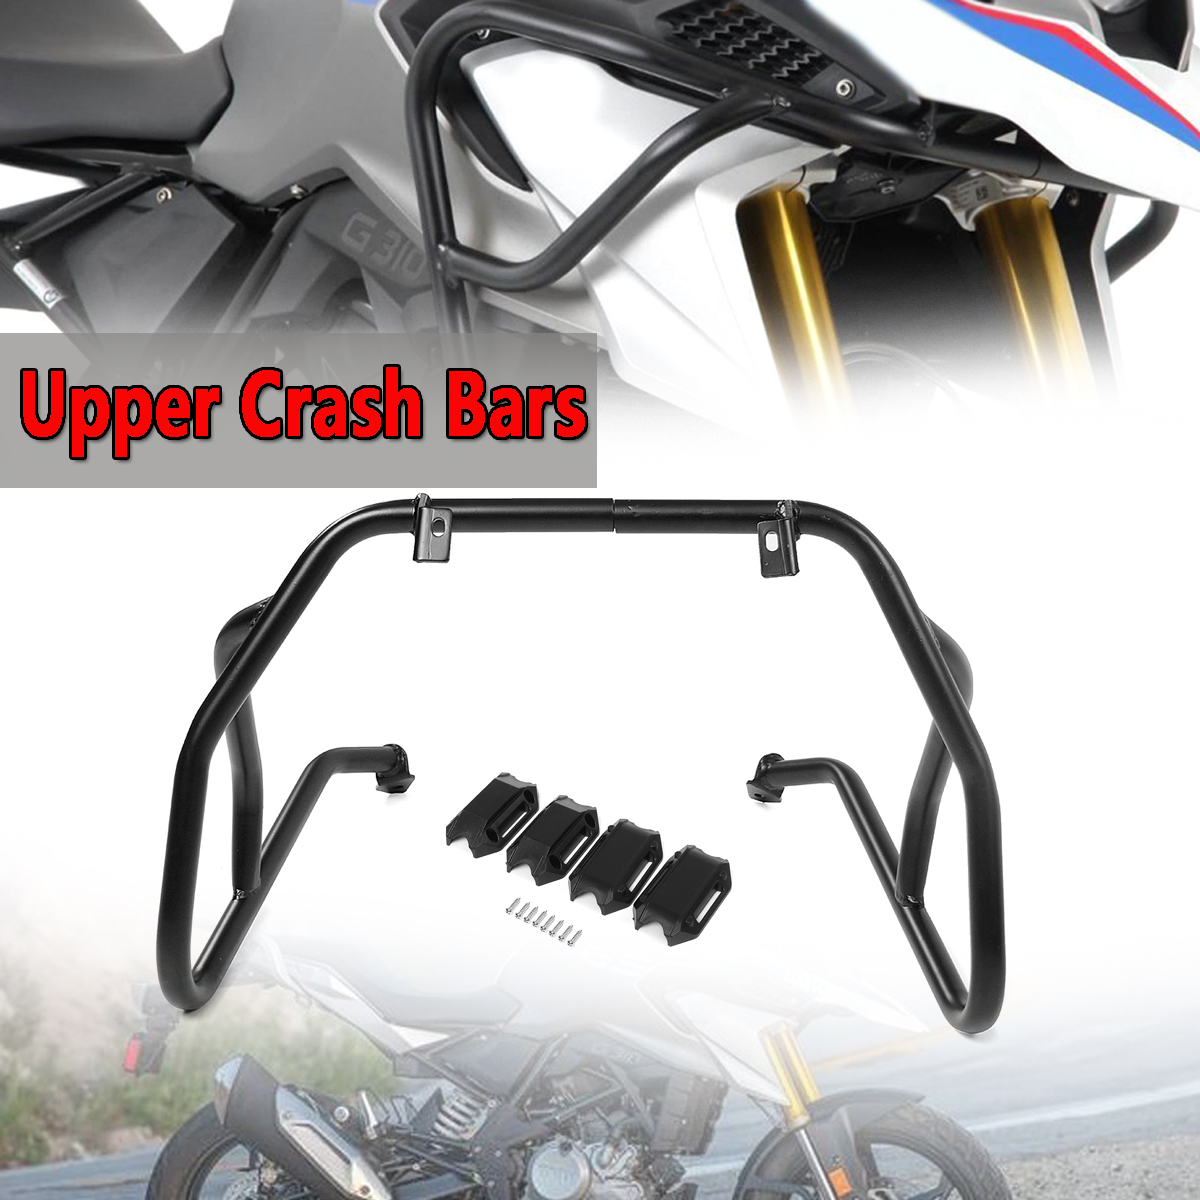 Motorcycle Black Front Upper Engine Guard Crash Bar Tank Guard Protector For BMW G310GS